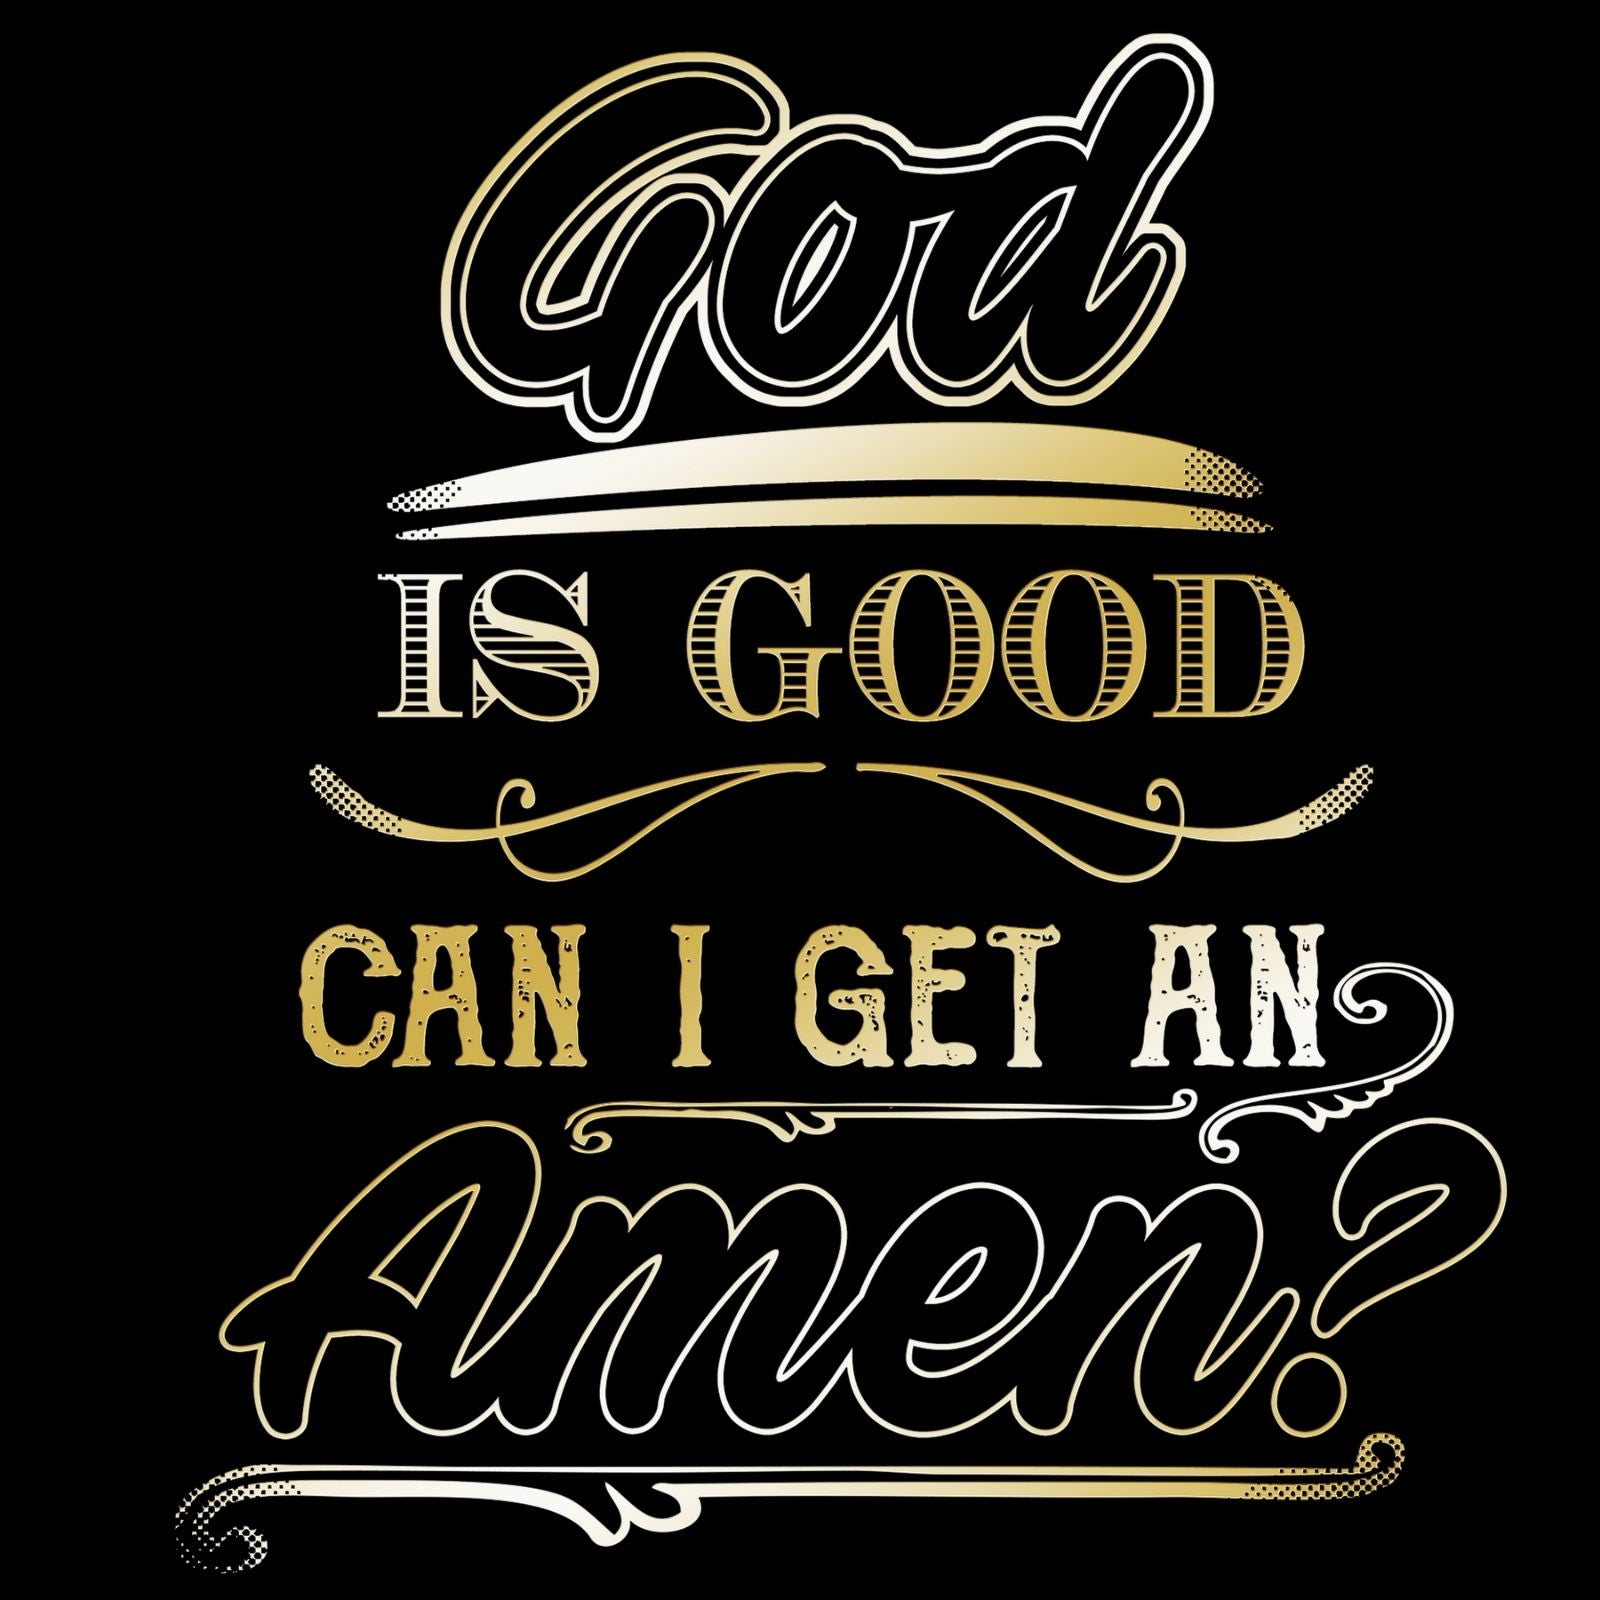 God Is Good Can I Get An Amen? - Bastard Graphics